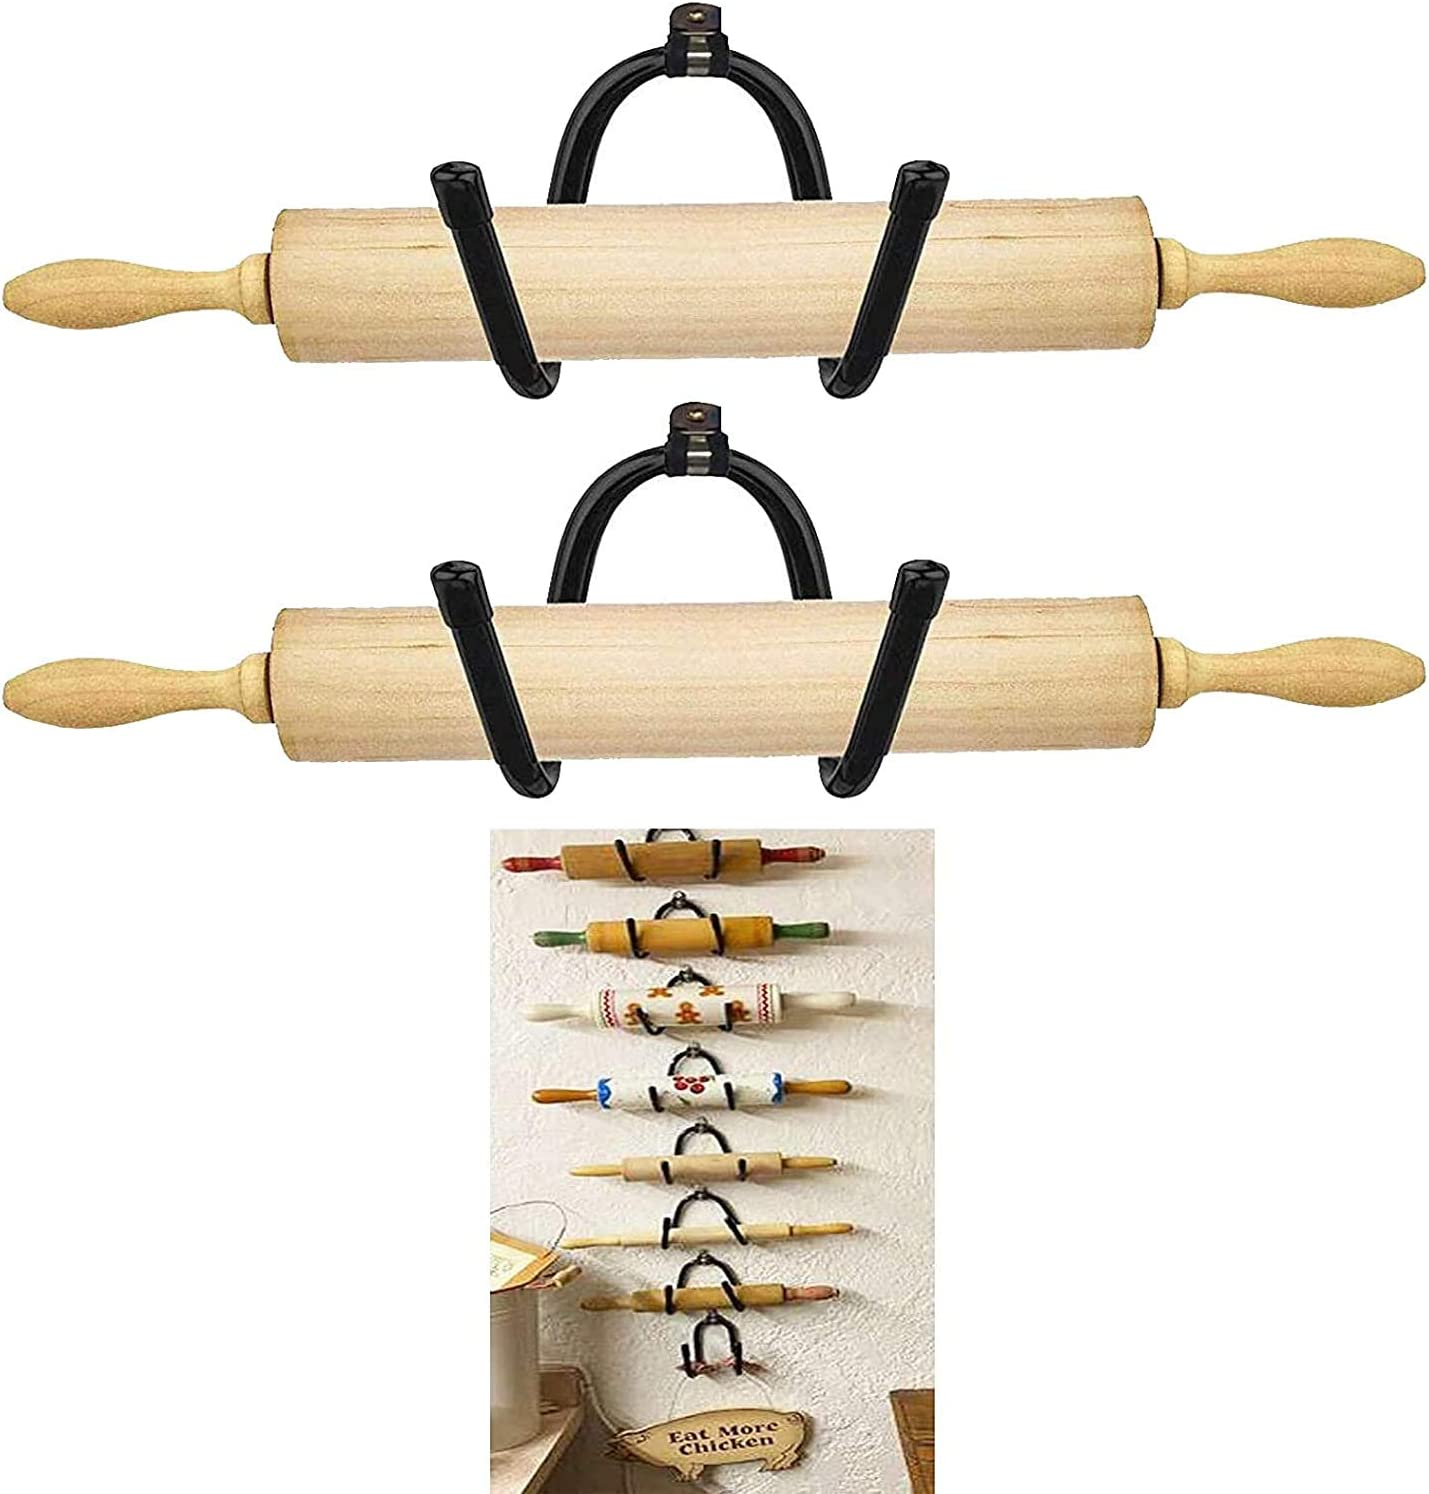 Set of 2 – Rolling Pin Holder Rolling Pin Display Rack Rolling Pin Storage – Wall Hanging Multi Purpose Bottle Rack – Rustic Home Decor Colonial Wall Décor - No Rolling Pin